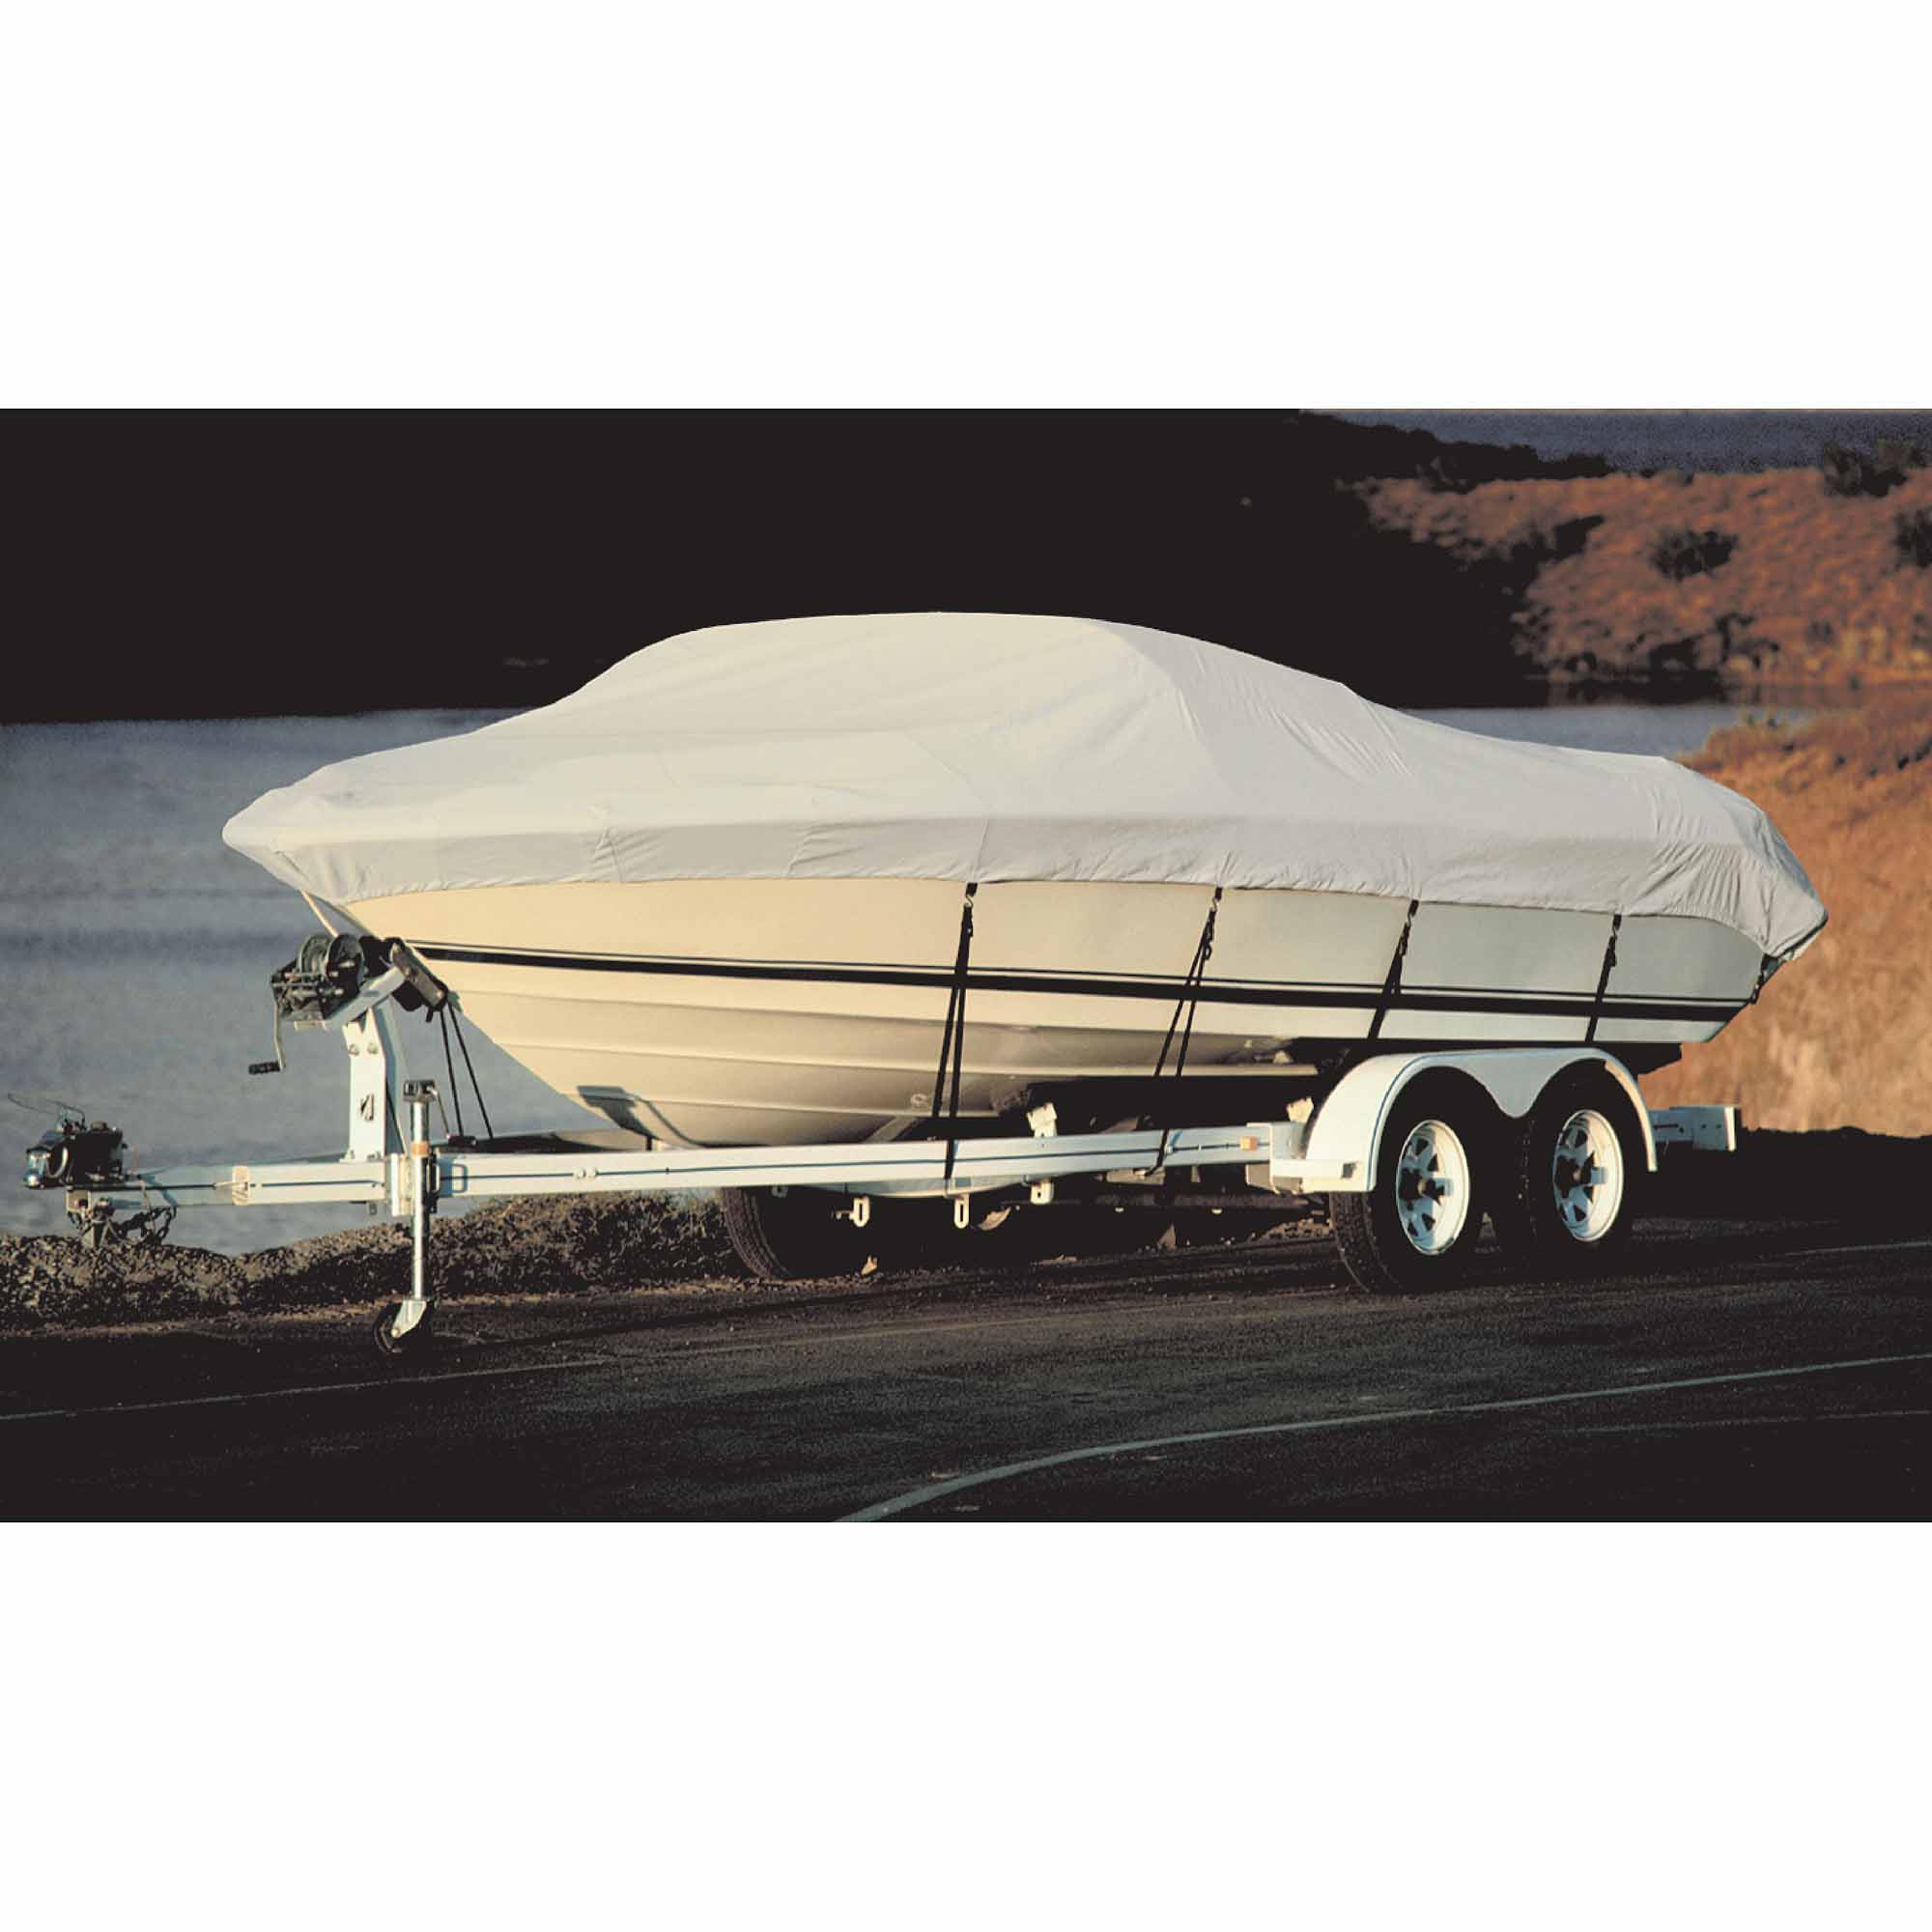 "Taylor Acrylic Coated Polyester Gray Hot Shot Fabric BoatGuard Boat Cover with Storage Bag and Tie-Downs, Fits 16' to 19' Fish 'n Ski, Up to 96"" Beam"